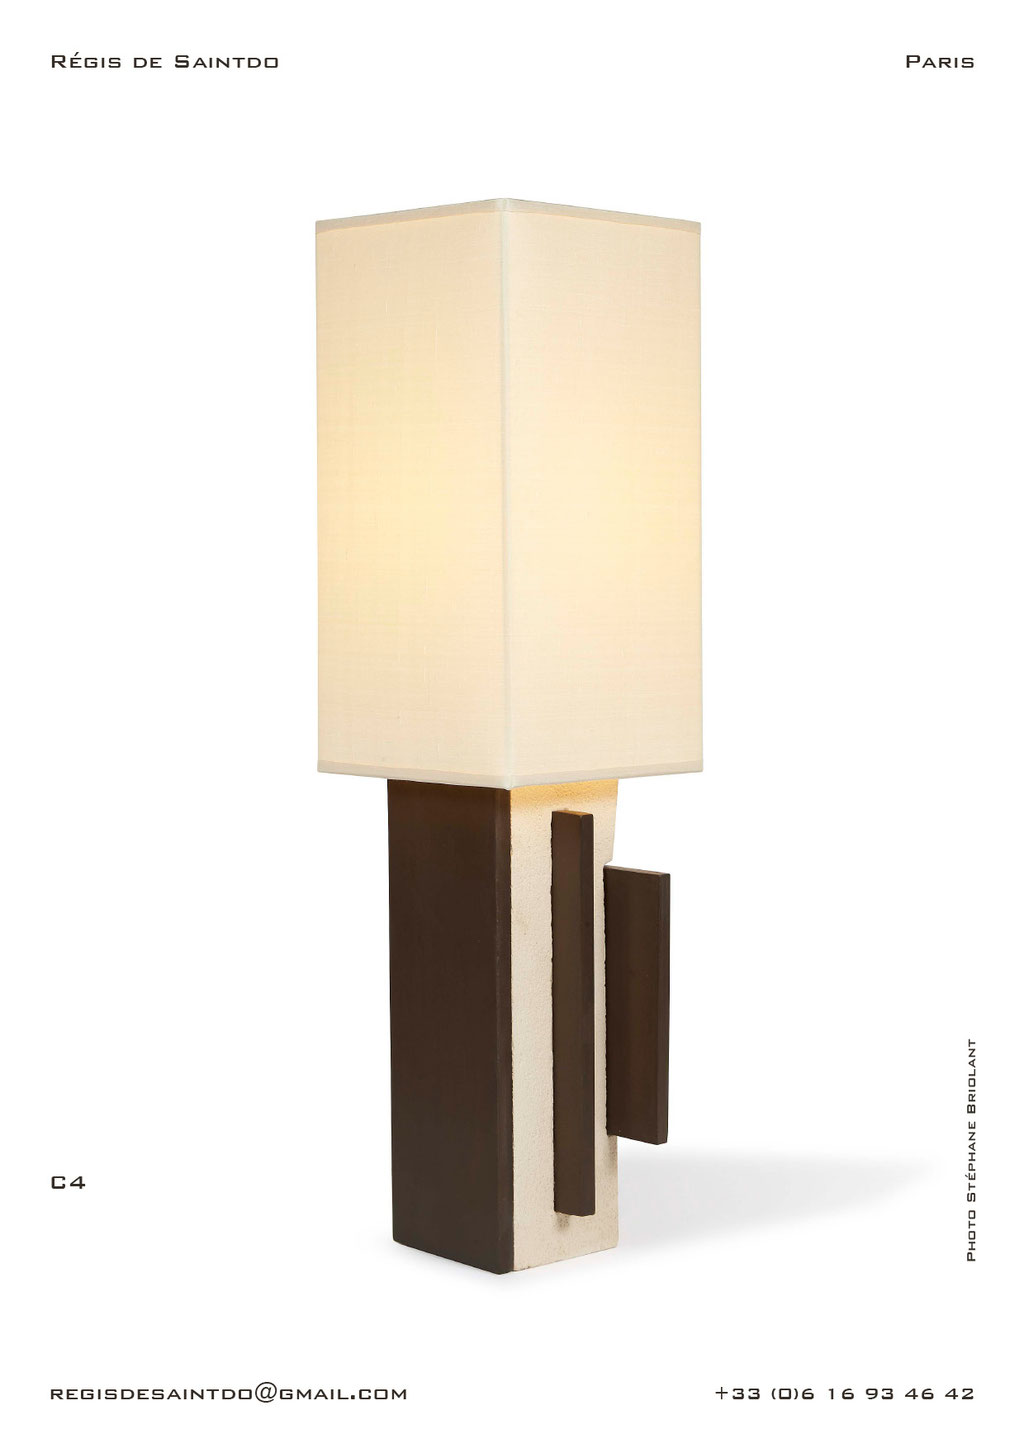 Lampe-C4-céramique-blanche-brute-brune-polie-faite-main-unique